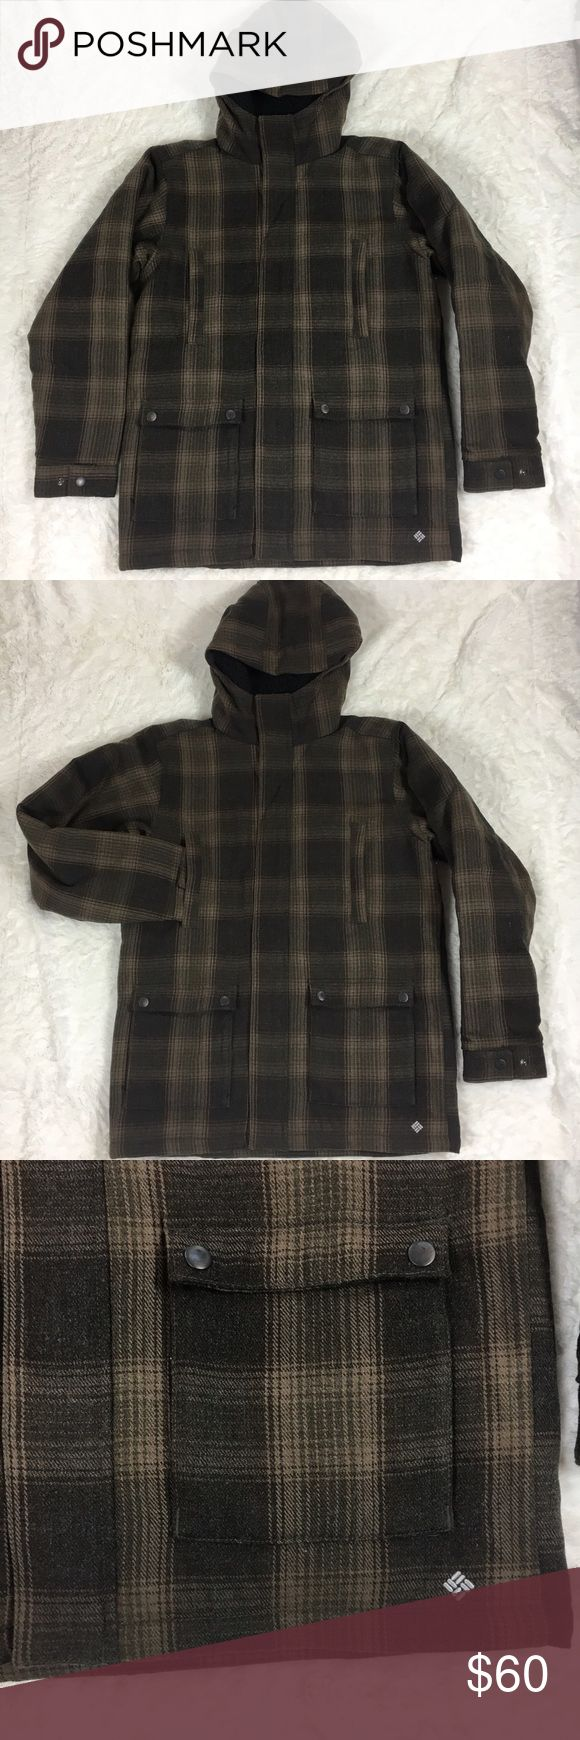 "Columbia Brown Plaid Parka Women's Medium Columbia sportswear company    Brown plaid parka. Size medium. Sleeves 27"" chest 23"" length 31"".         90% acrylic 10% wool with nylon lining. Advanced repellency. Full zip. Lots of pockets. Omni shield. Like new condition. Columbia Jackets & Coats"